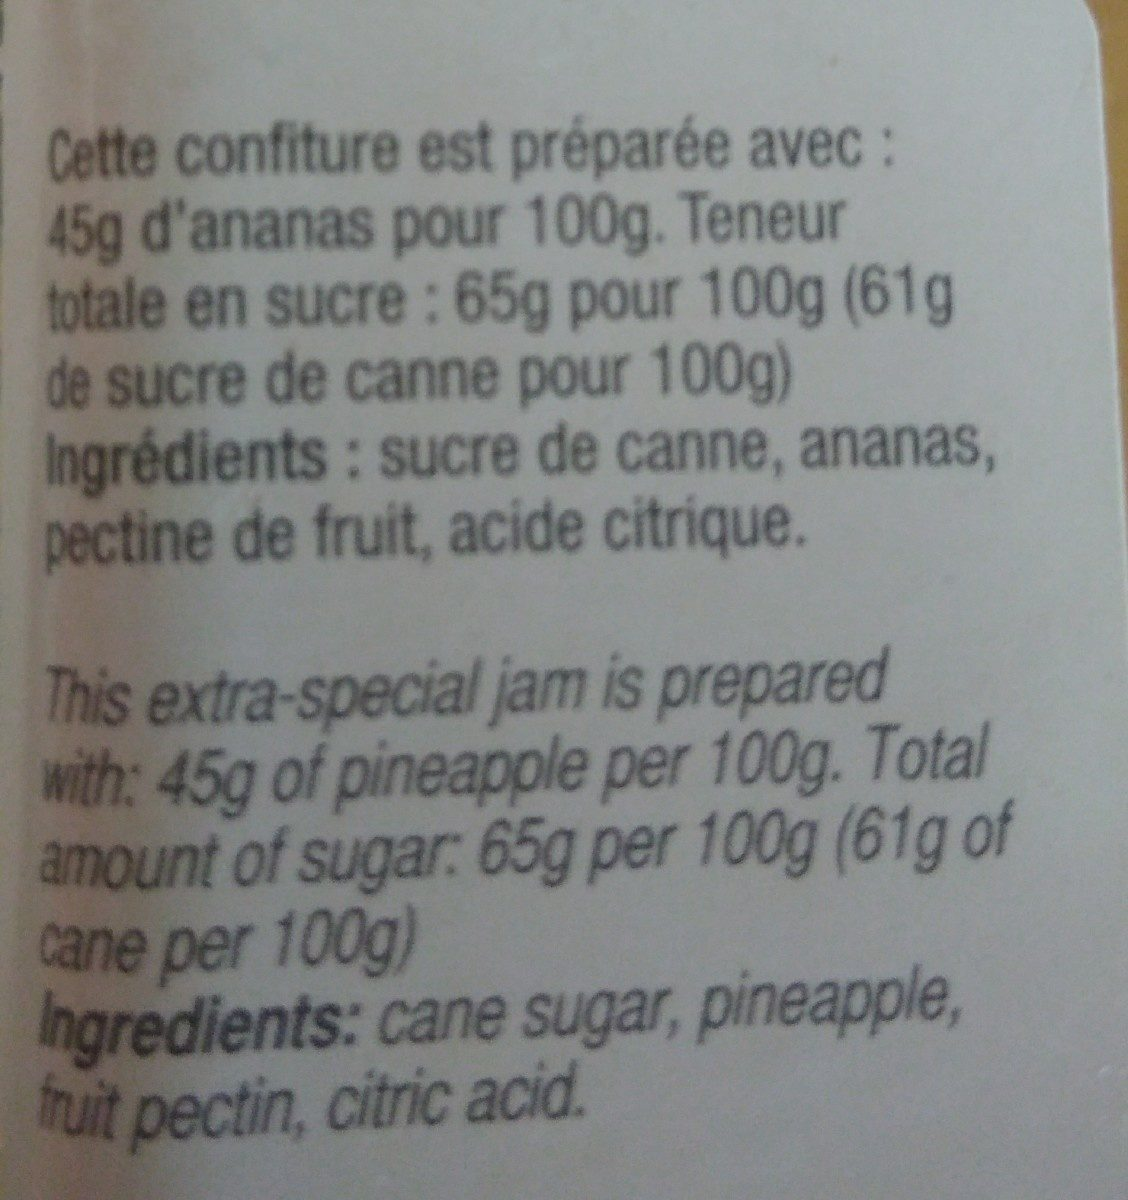 Confiture ananas extra au sucre de canne - Ingredients